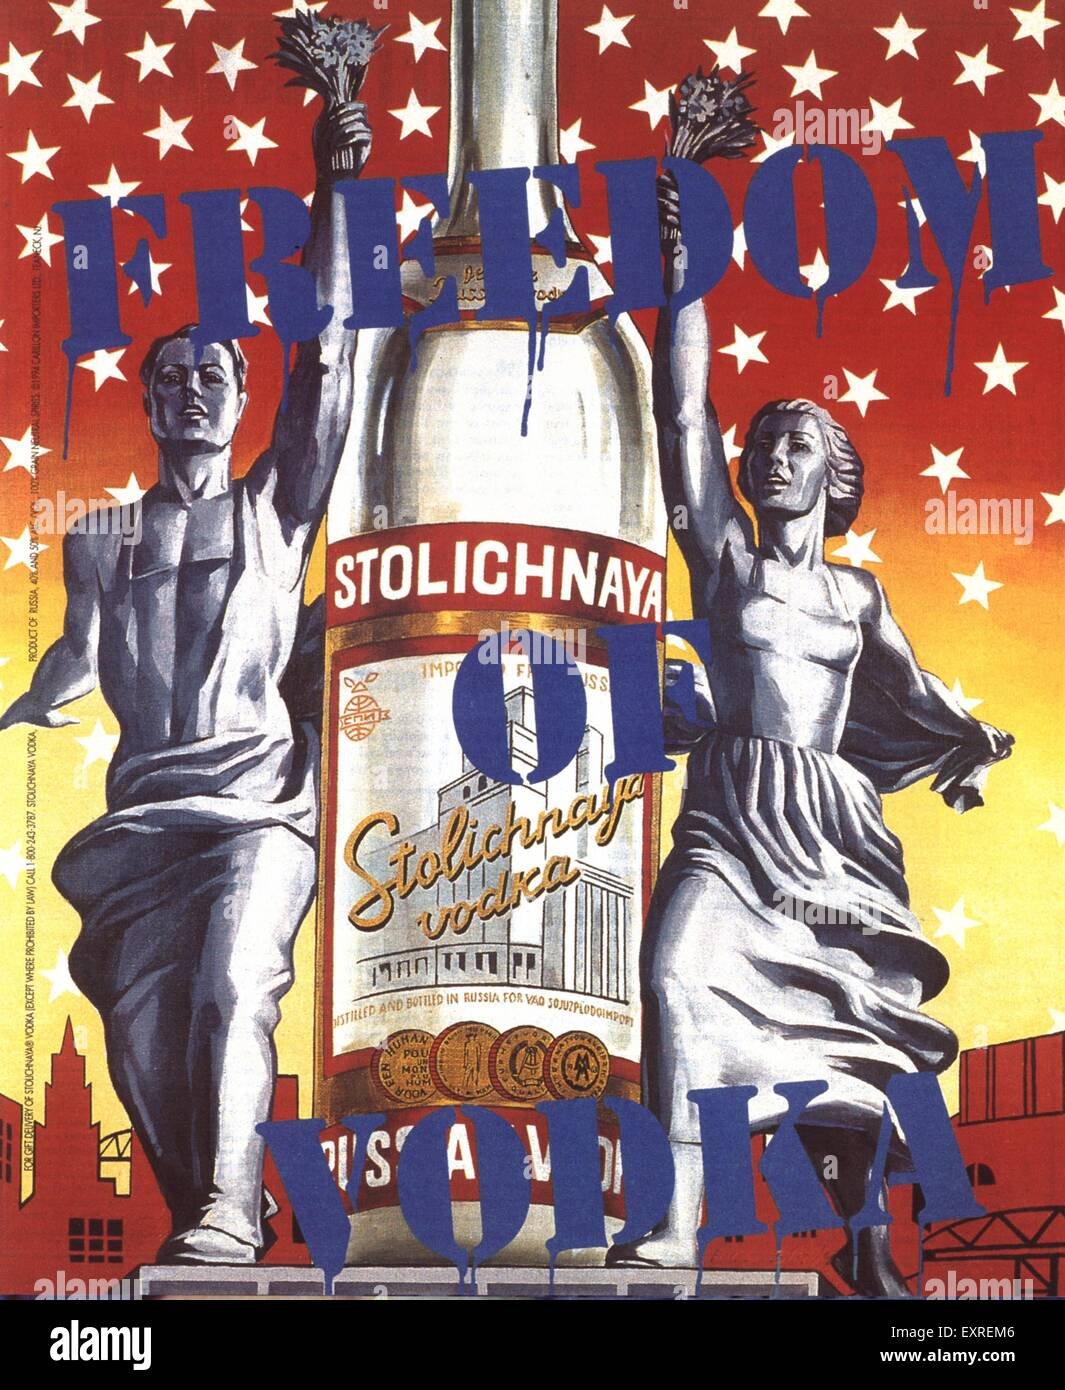 1990 UK Stolichnaya Poster Photo Stock